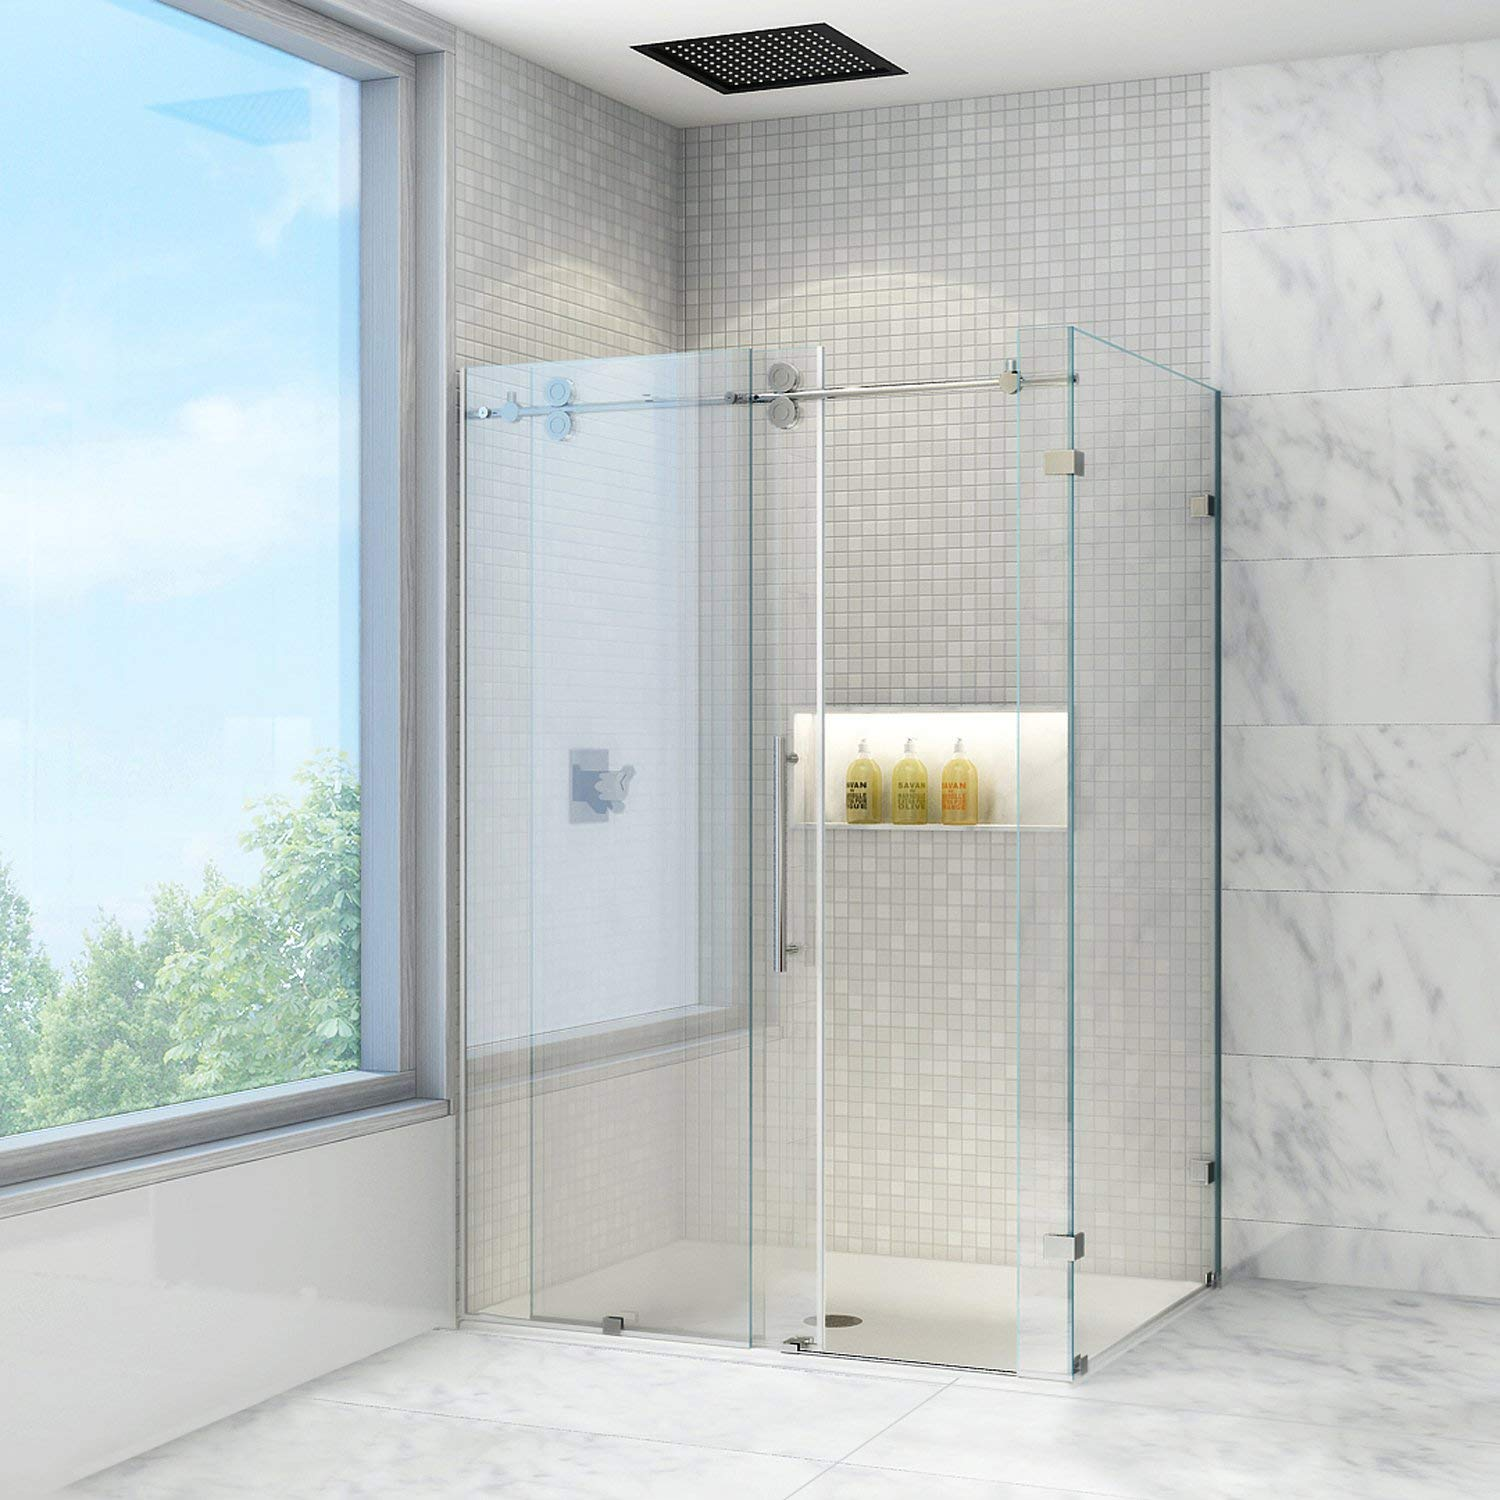 Top 10 Best Shower Enclosures In 2018 Reviews Top Best Pro Review